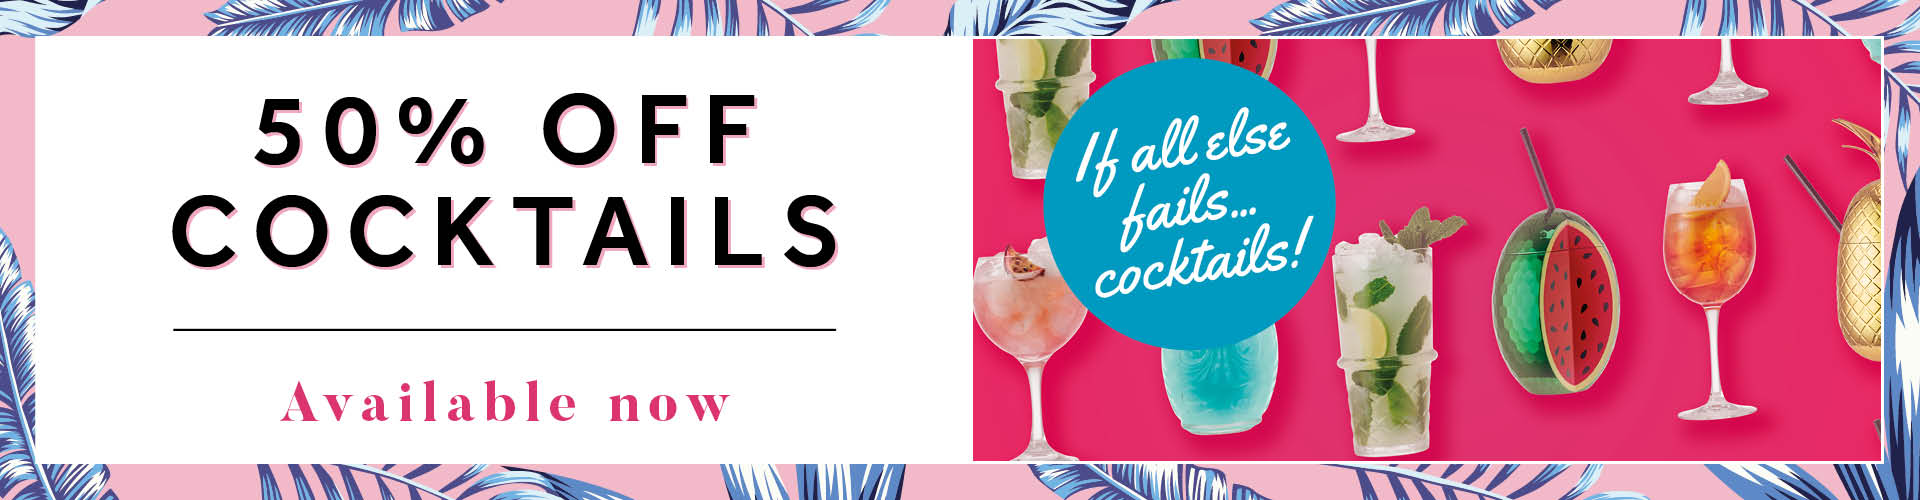 50% Off Cocktails